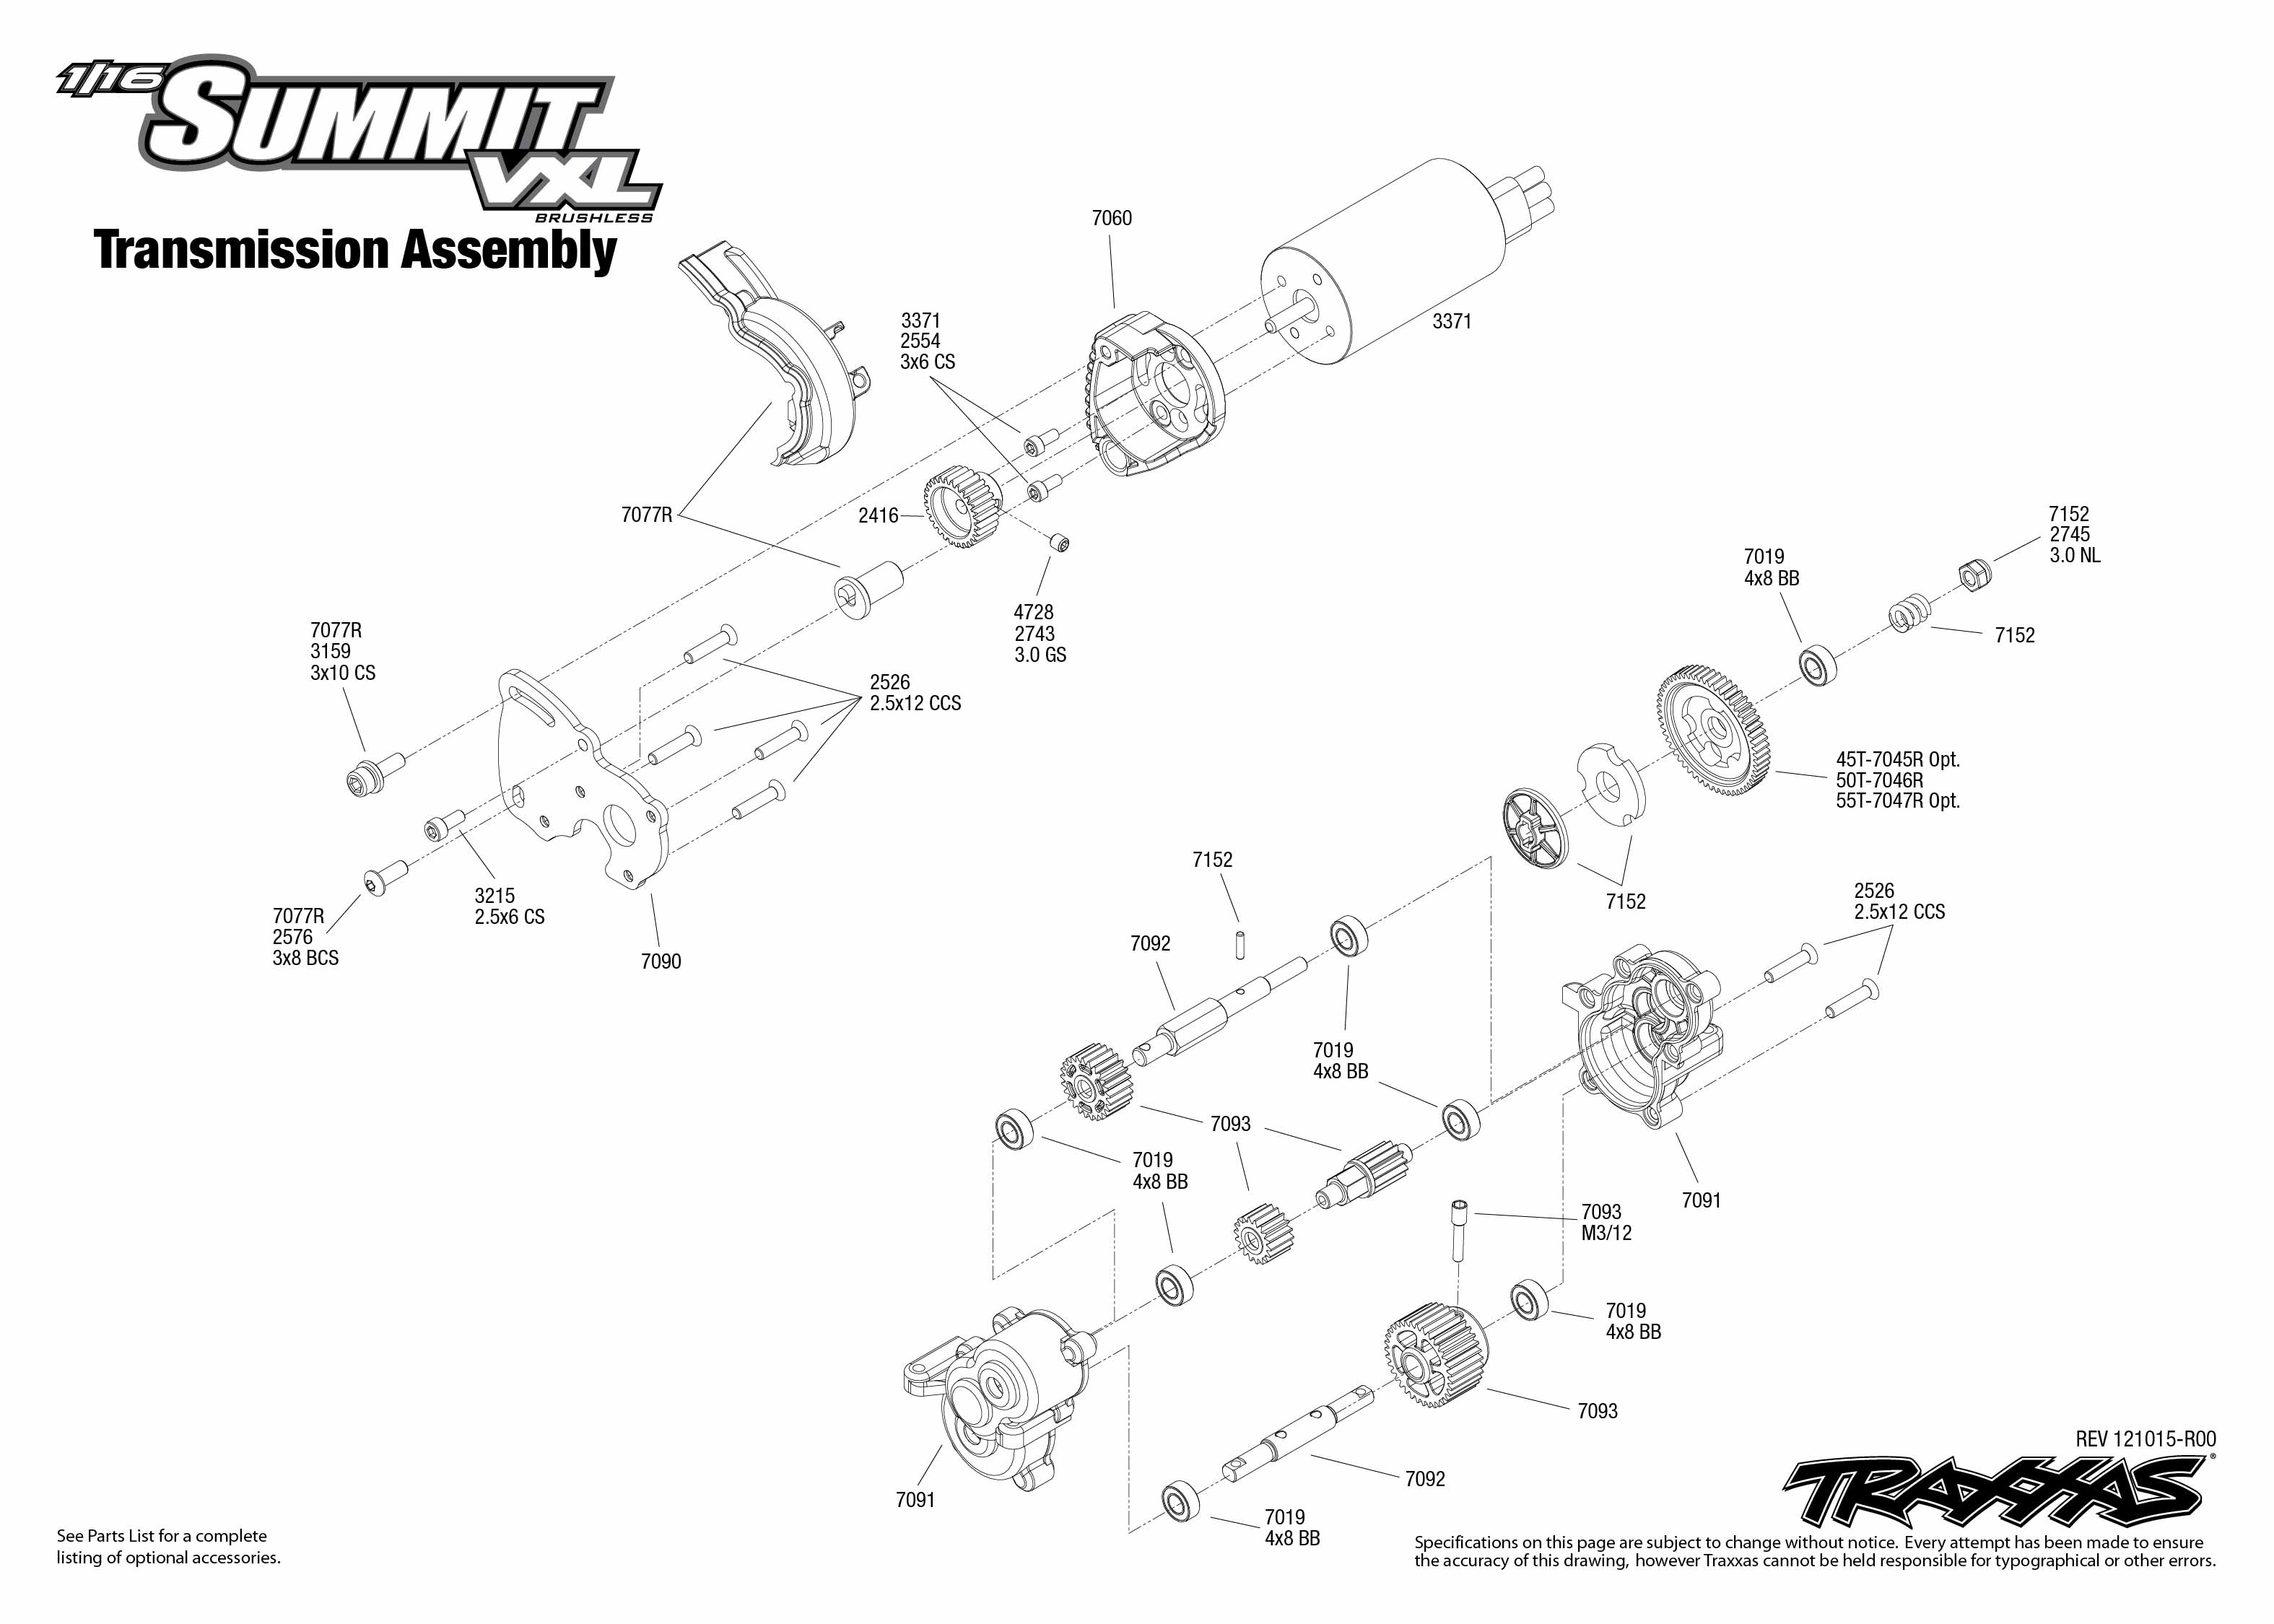 Traxxas 1/16 Scale Summit VXL 4WD Extreme Terrain Monster